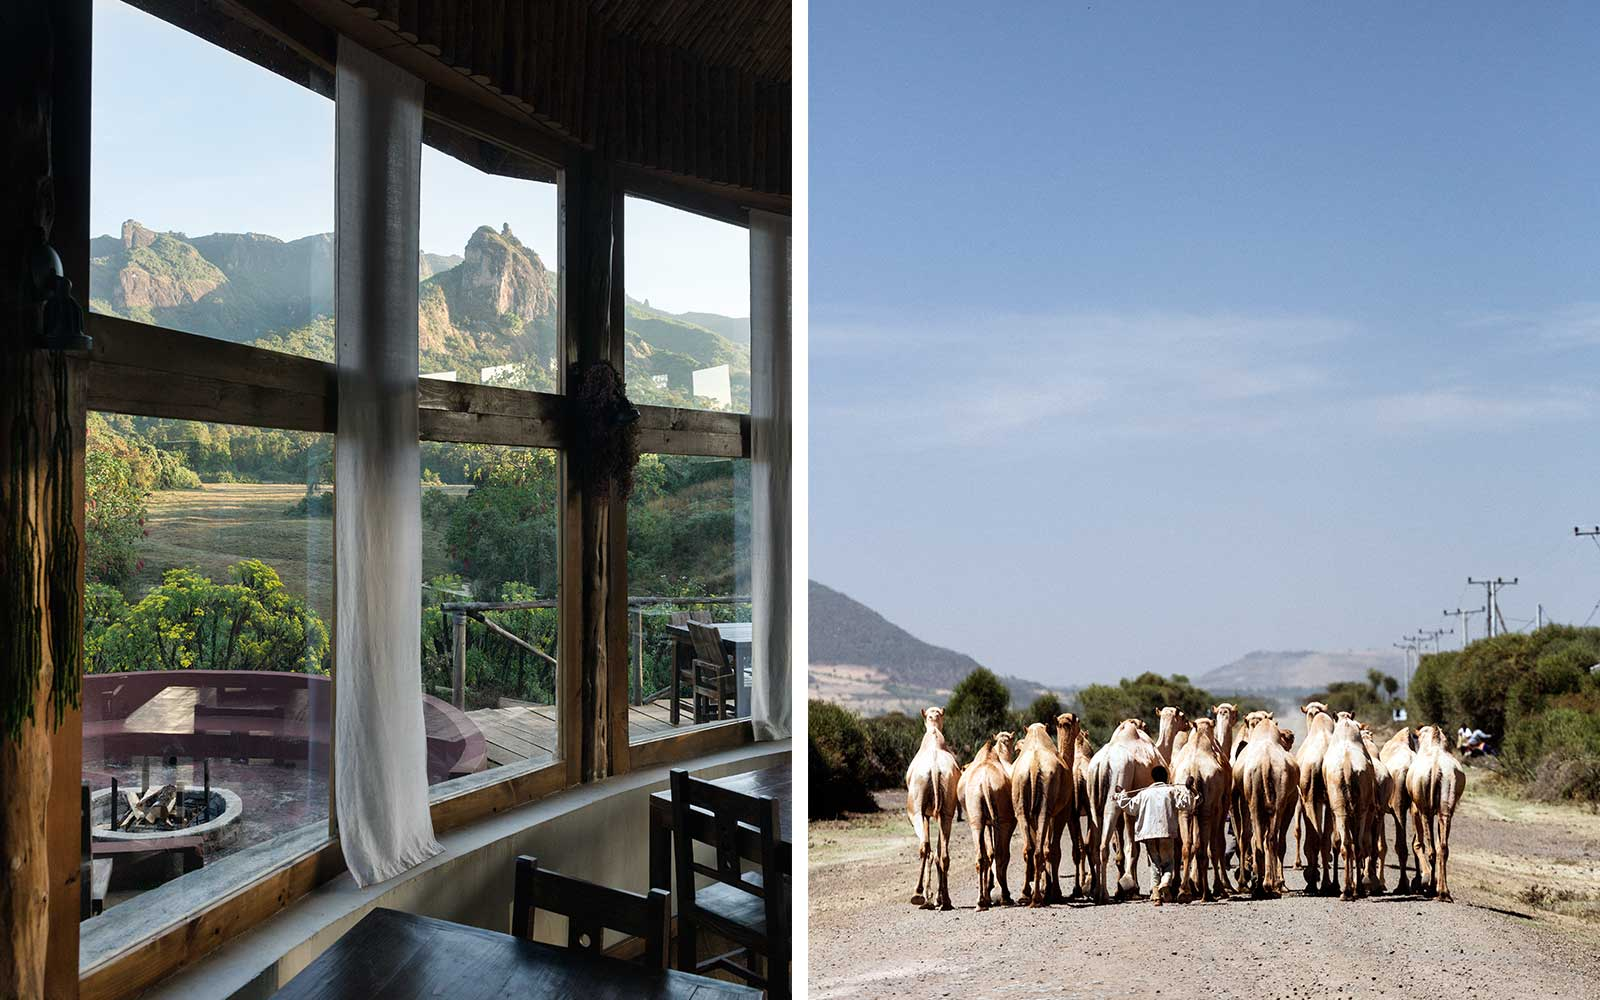 Ethiopia's Bale Mountain Lodge